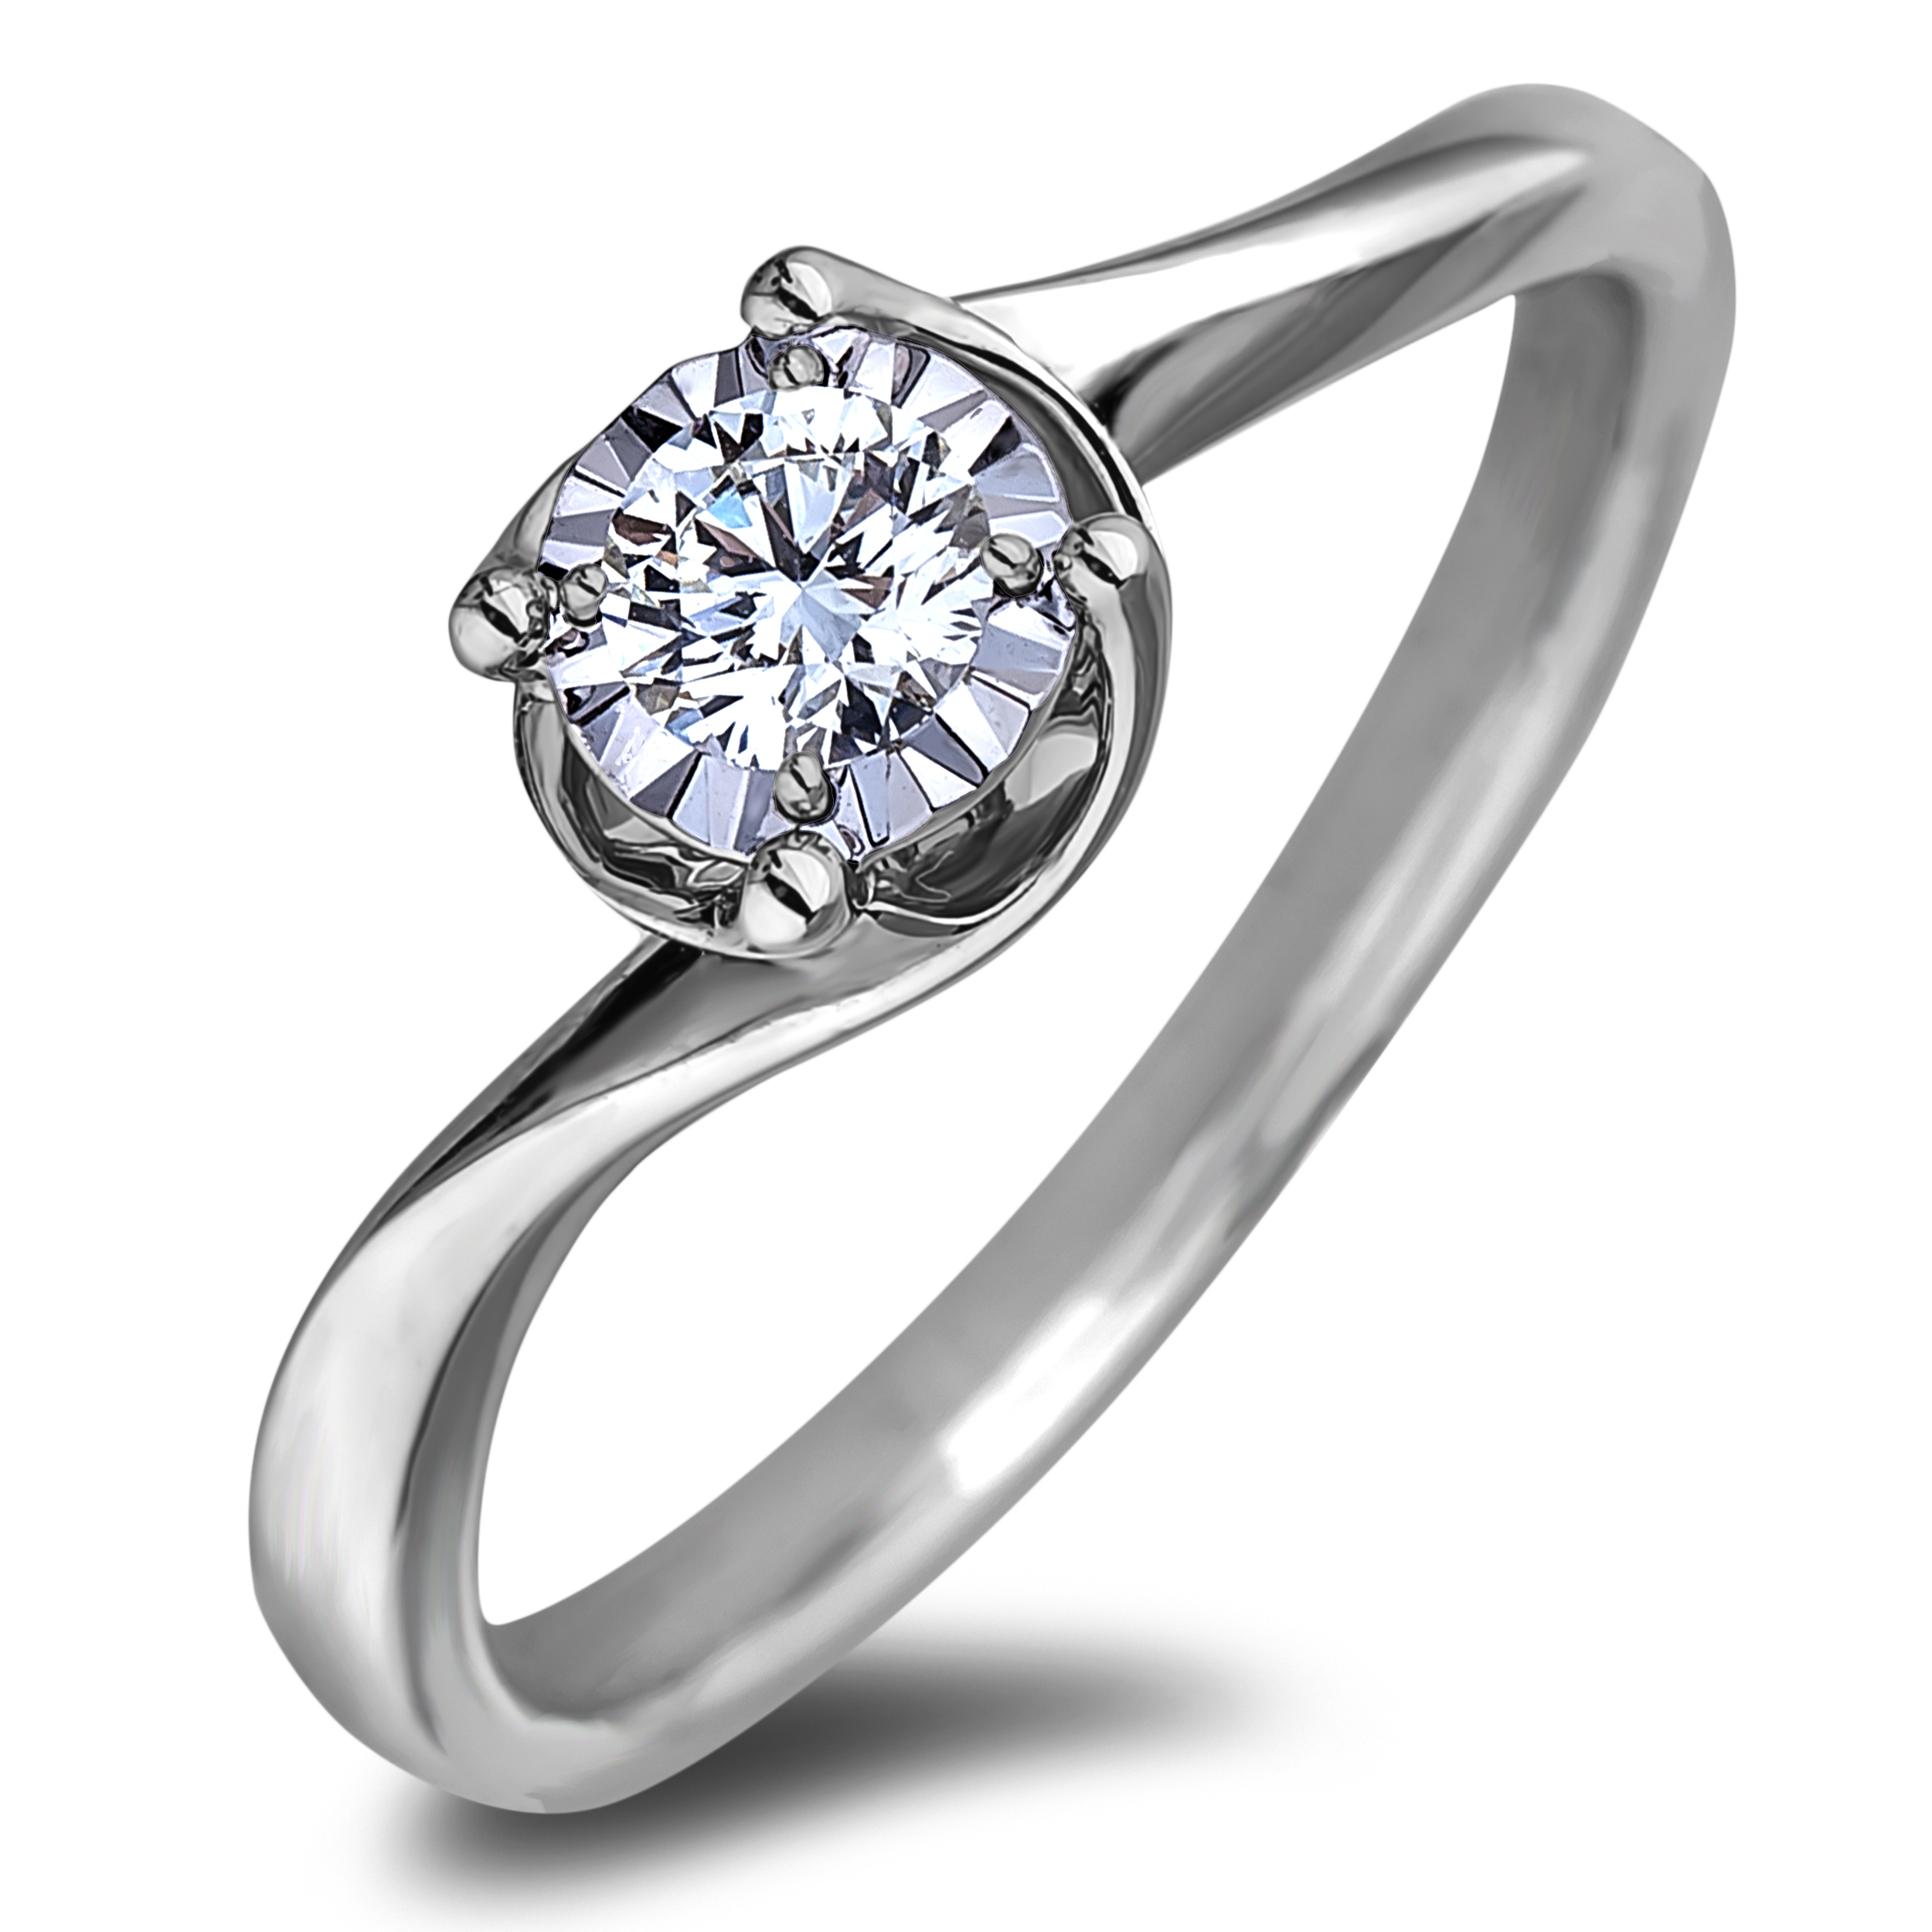 Diamond Solitaires JS-AFCR1022020 (Rings)